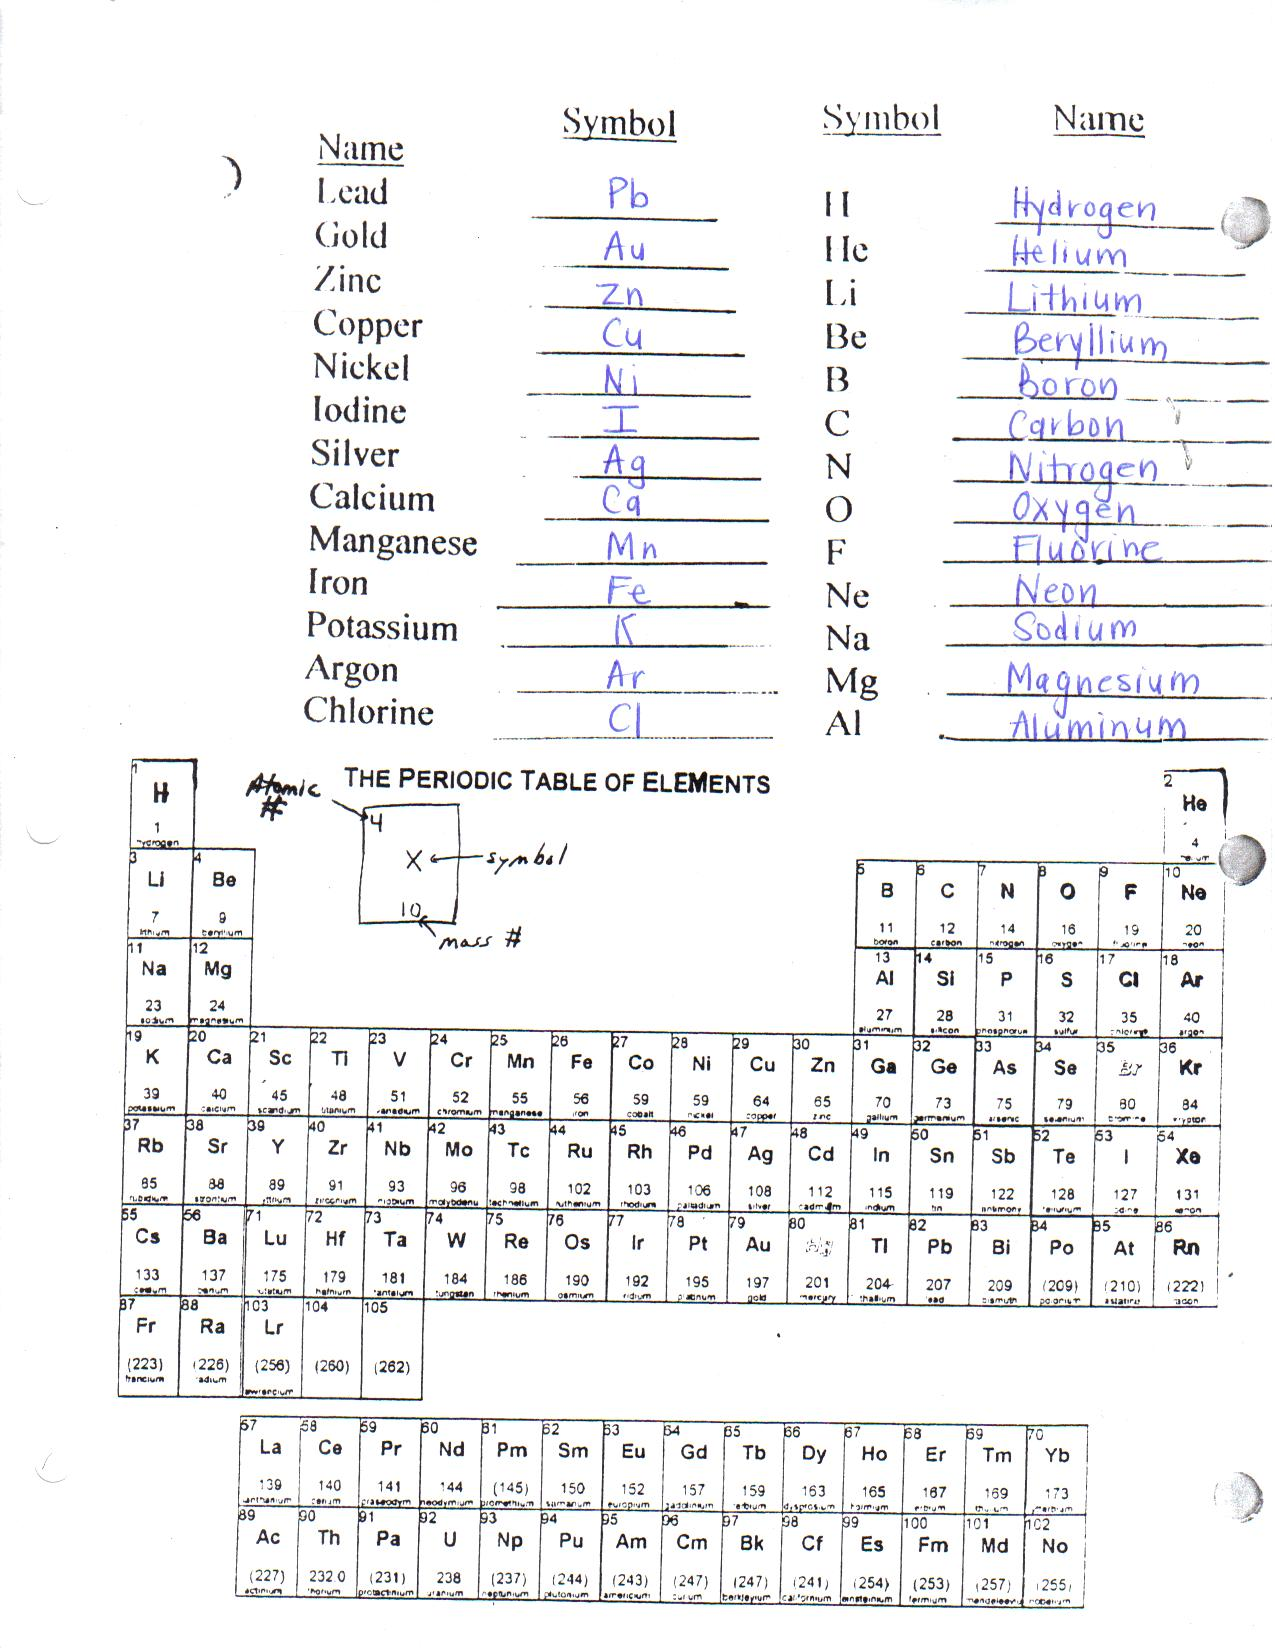 Printables Periodic Table Practice Worksheet periodic table practice worksheet abitlikethis 1 15 compounds symbols amp elements